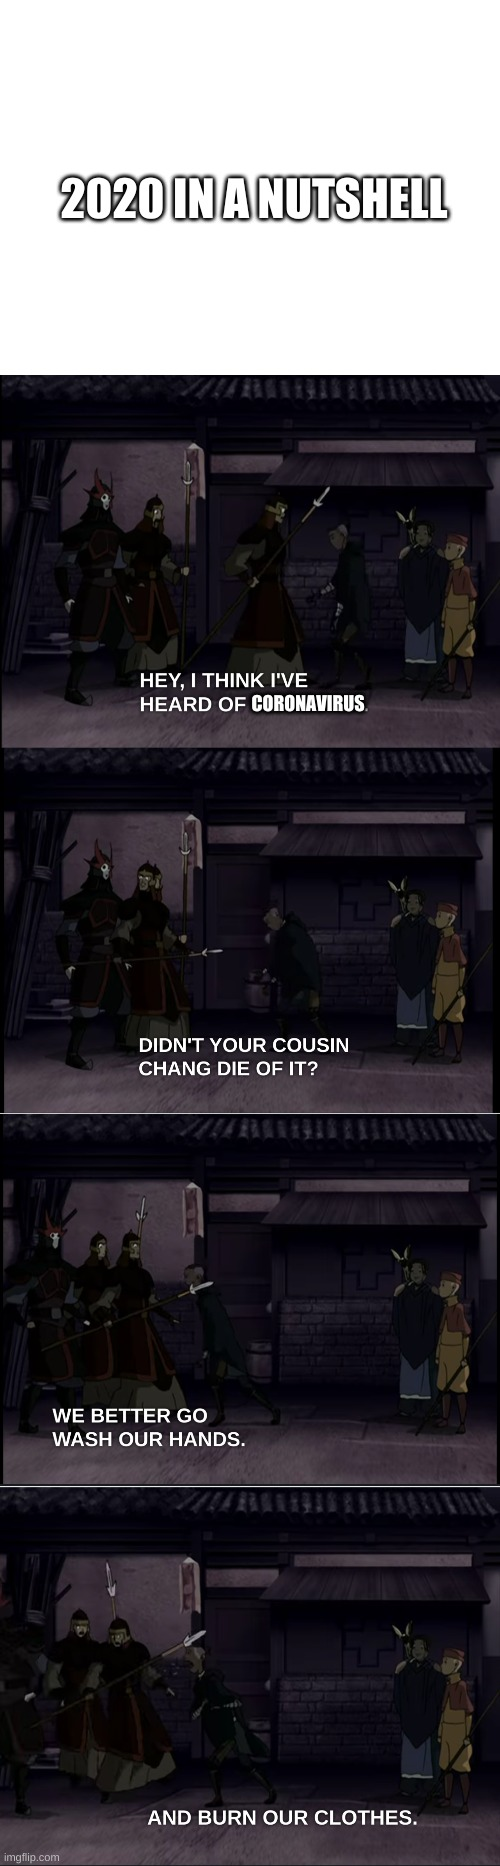 A random Avatar The Last Airbender 2020 meme |  2020 IN A NUTSHELL; CORONAVIRUS | image tagged in blank white template | made w/ Imgflip meme maker